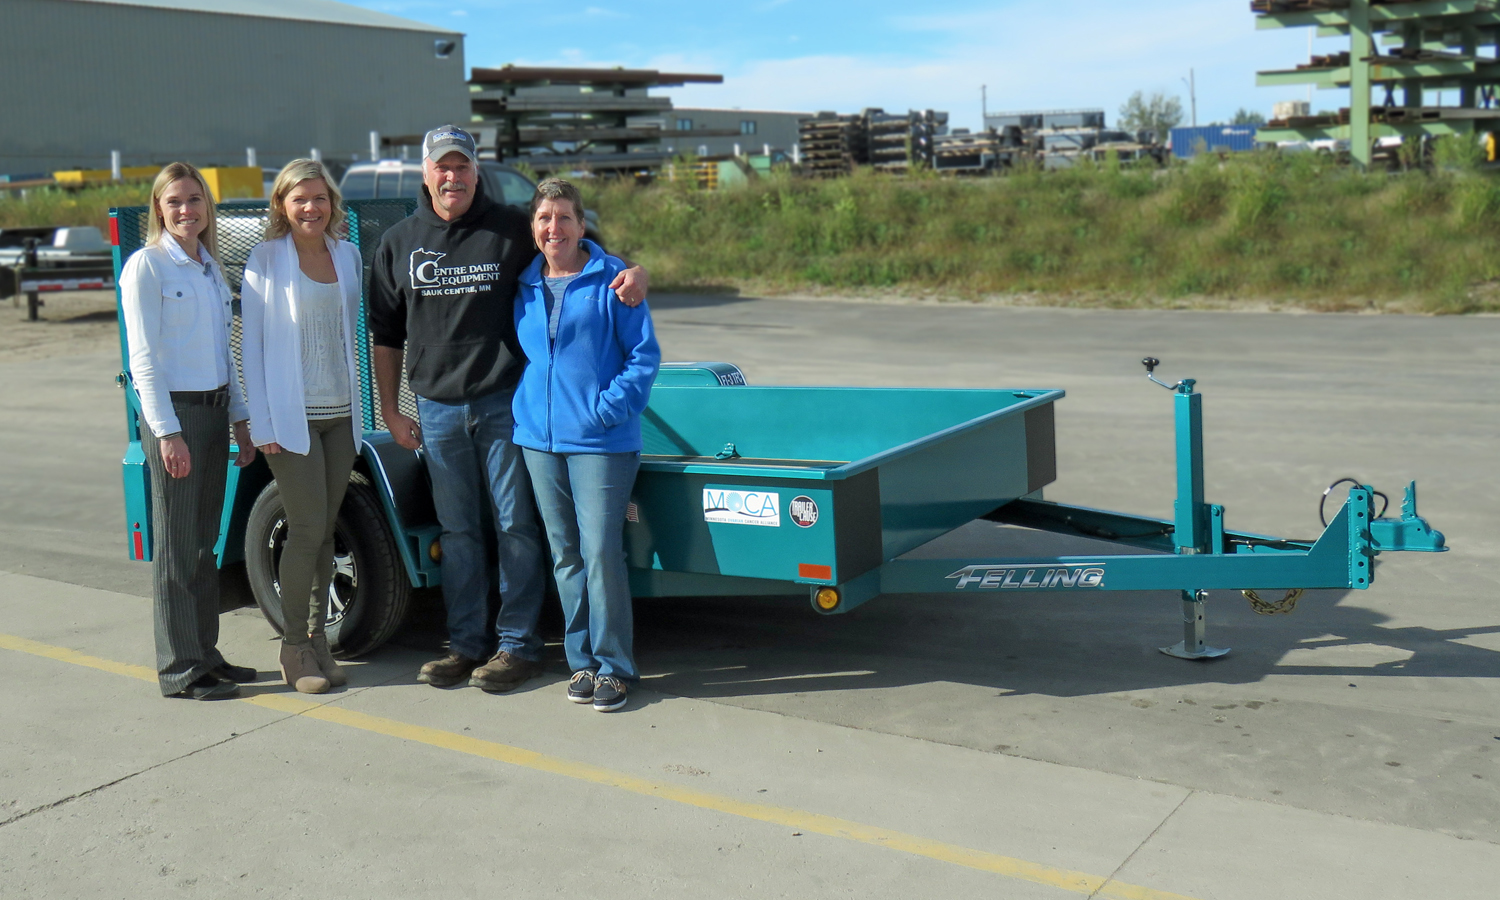 Felling Trailers co-owners, CEO Brenda Jennissen and Vice President of HR Bonnie Radjenovich, and bid winners Jon and Laurie Stein, Centre Dairy Equipment & Supply Inc.